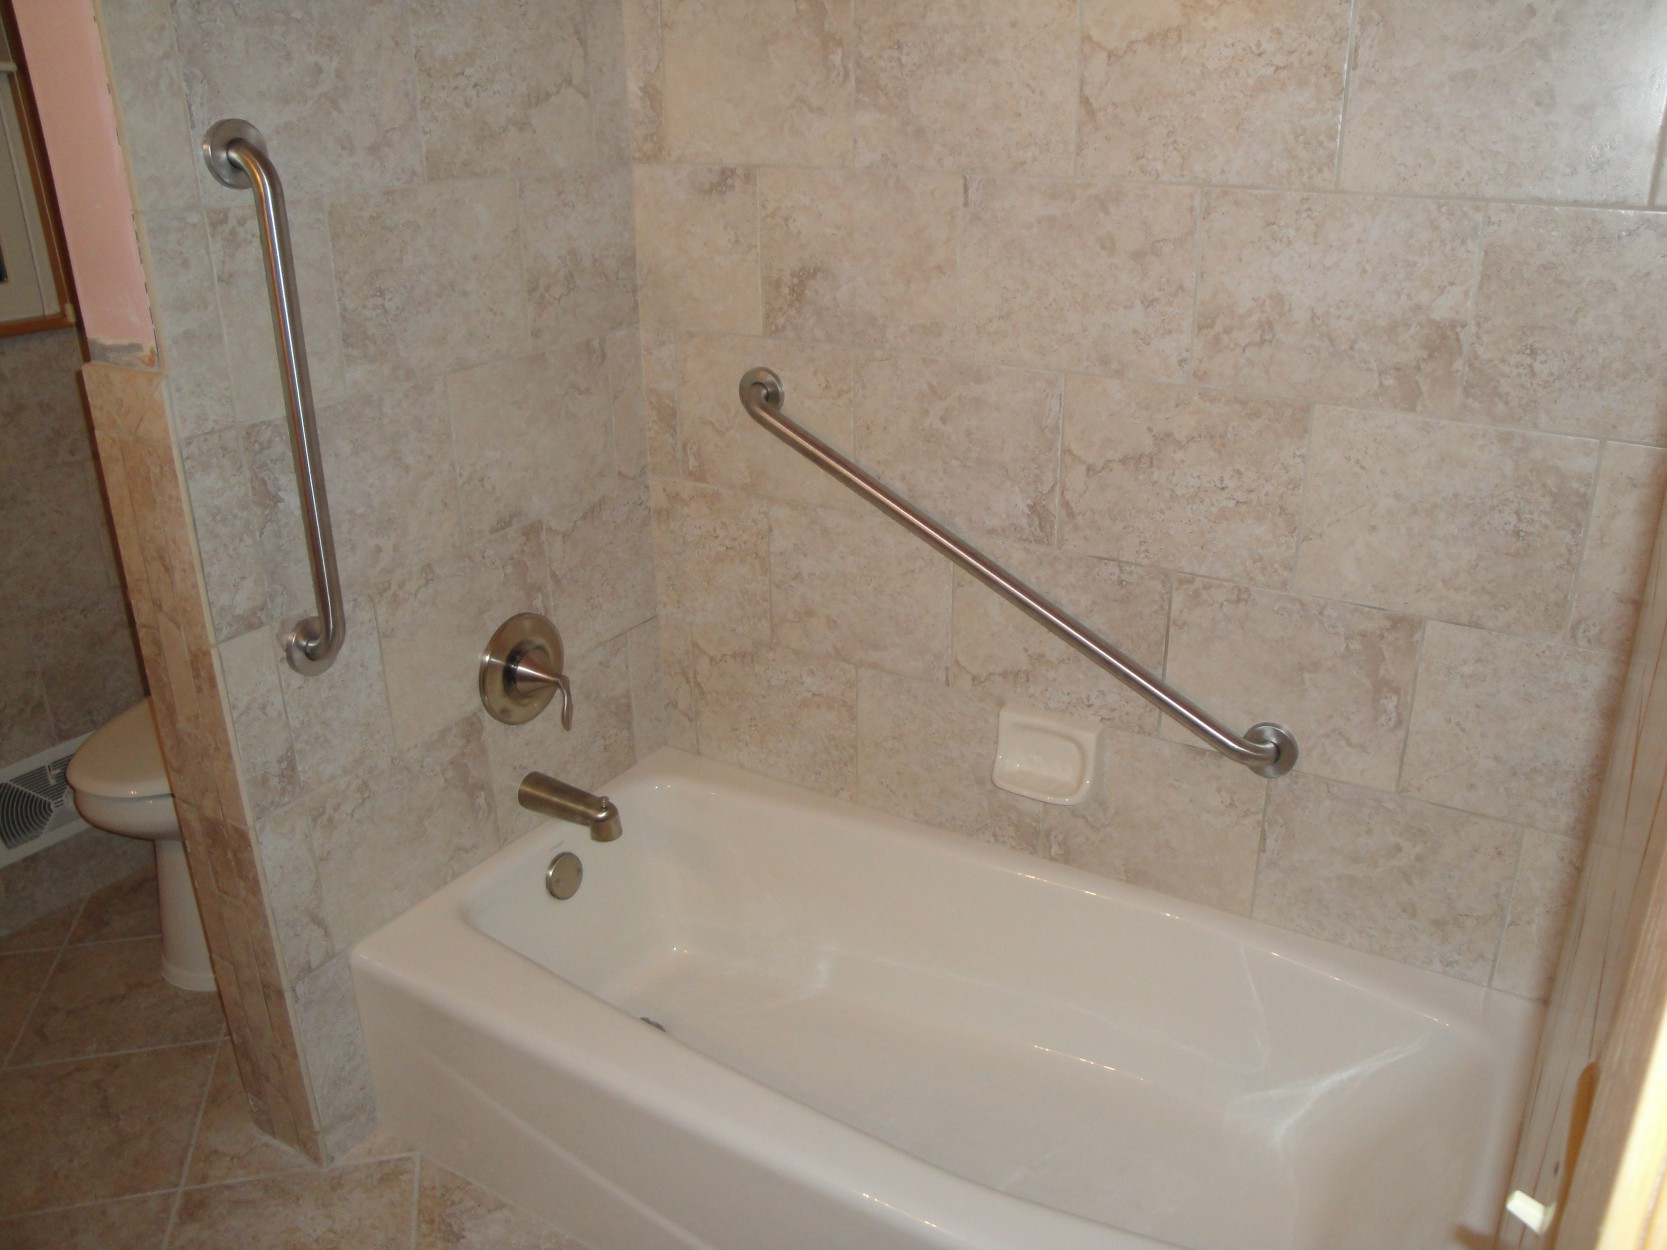 Terry Overacker Plumbing Specialty Products - Terry Overacker Plumbing